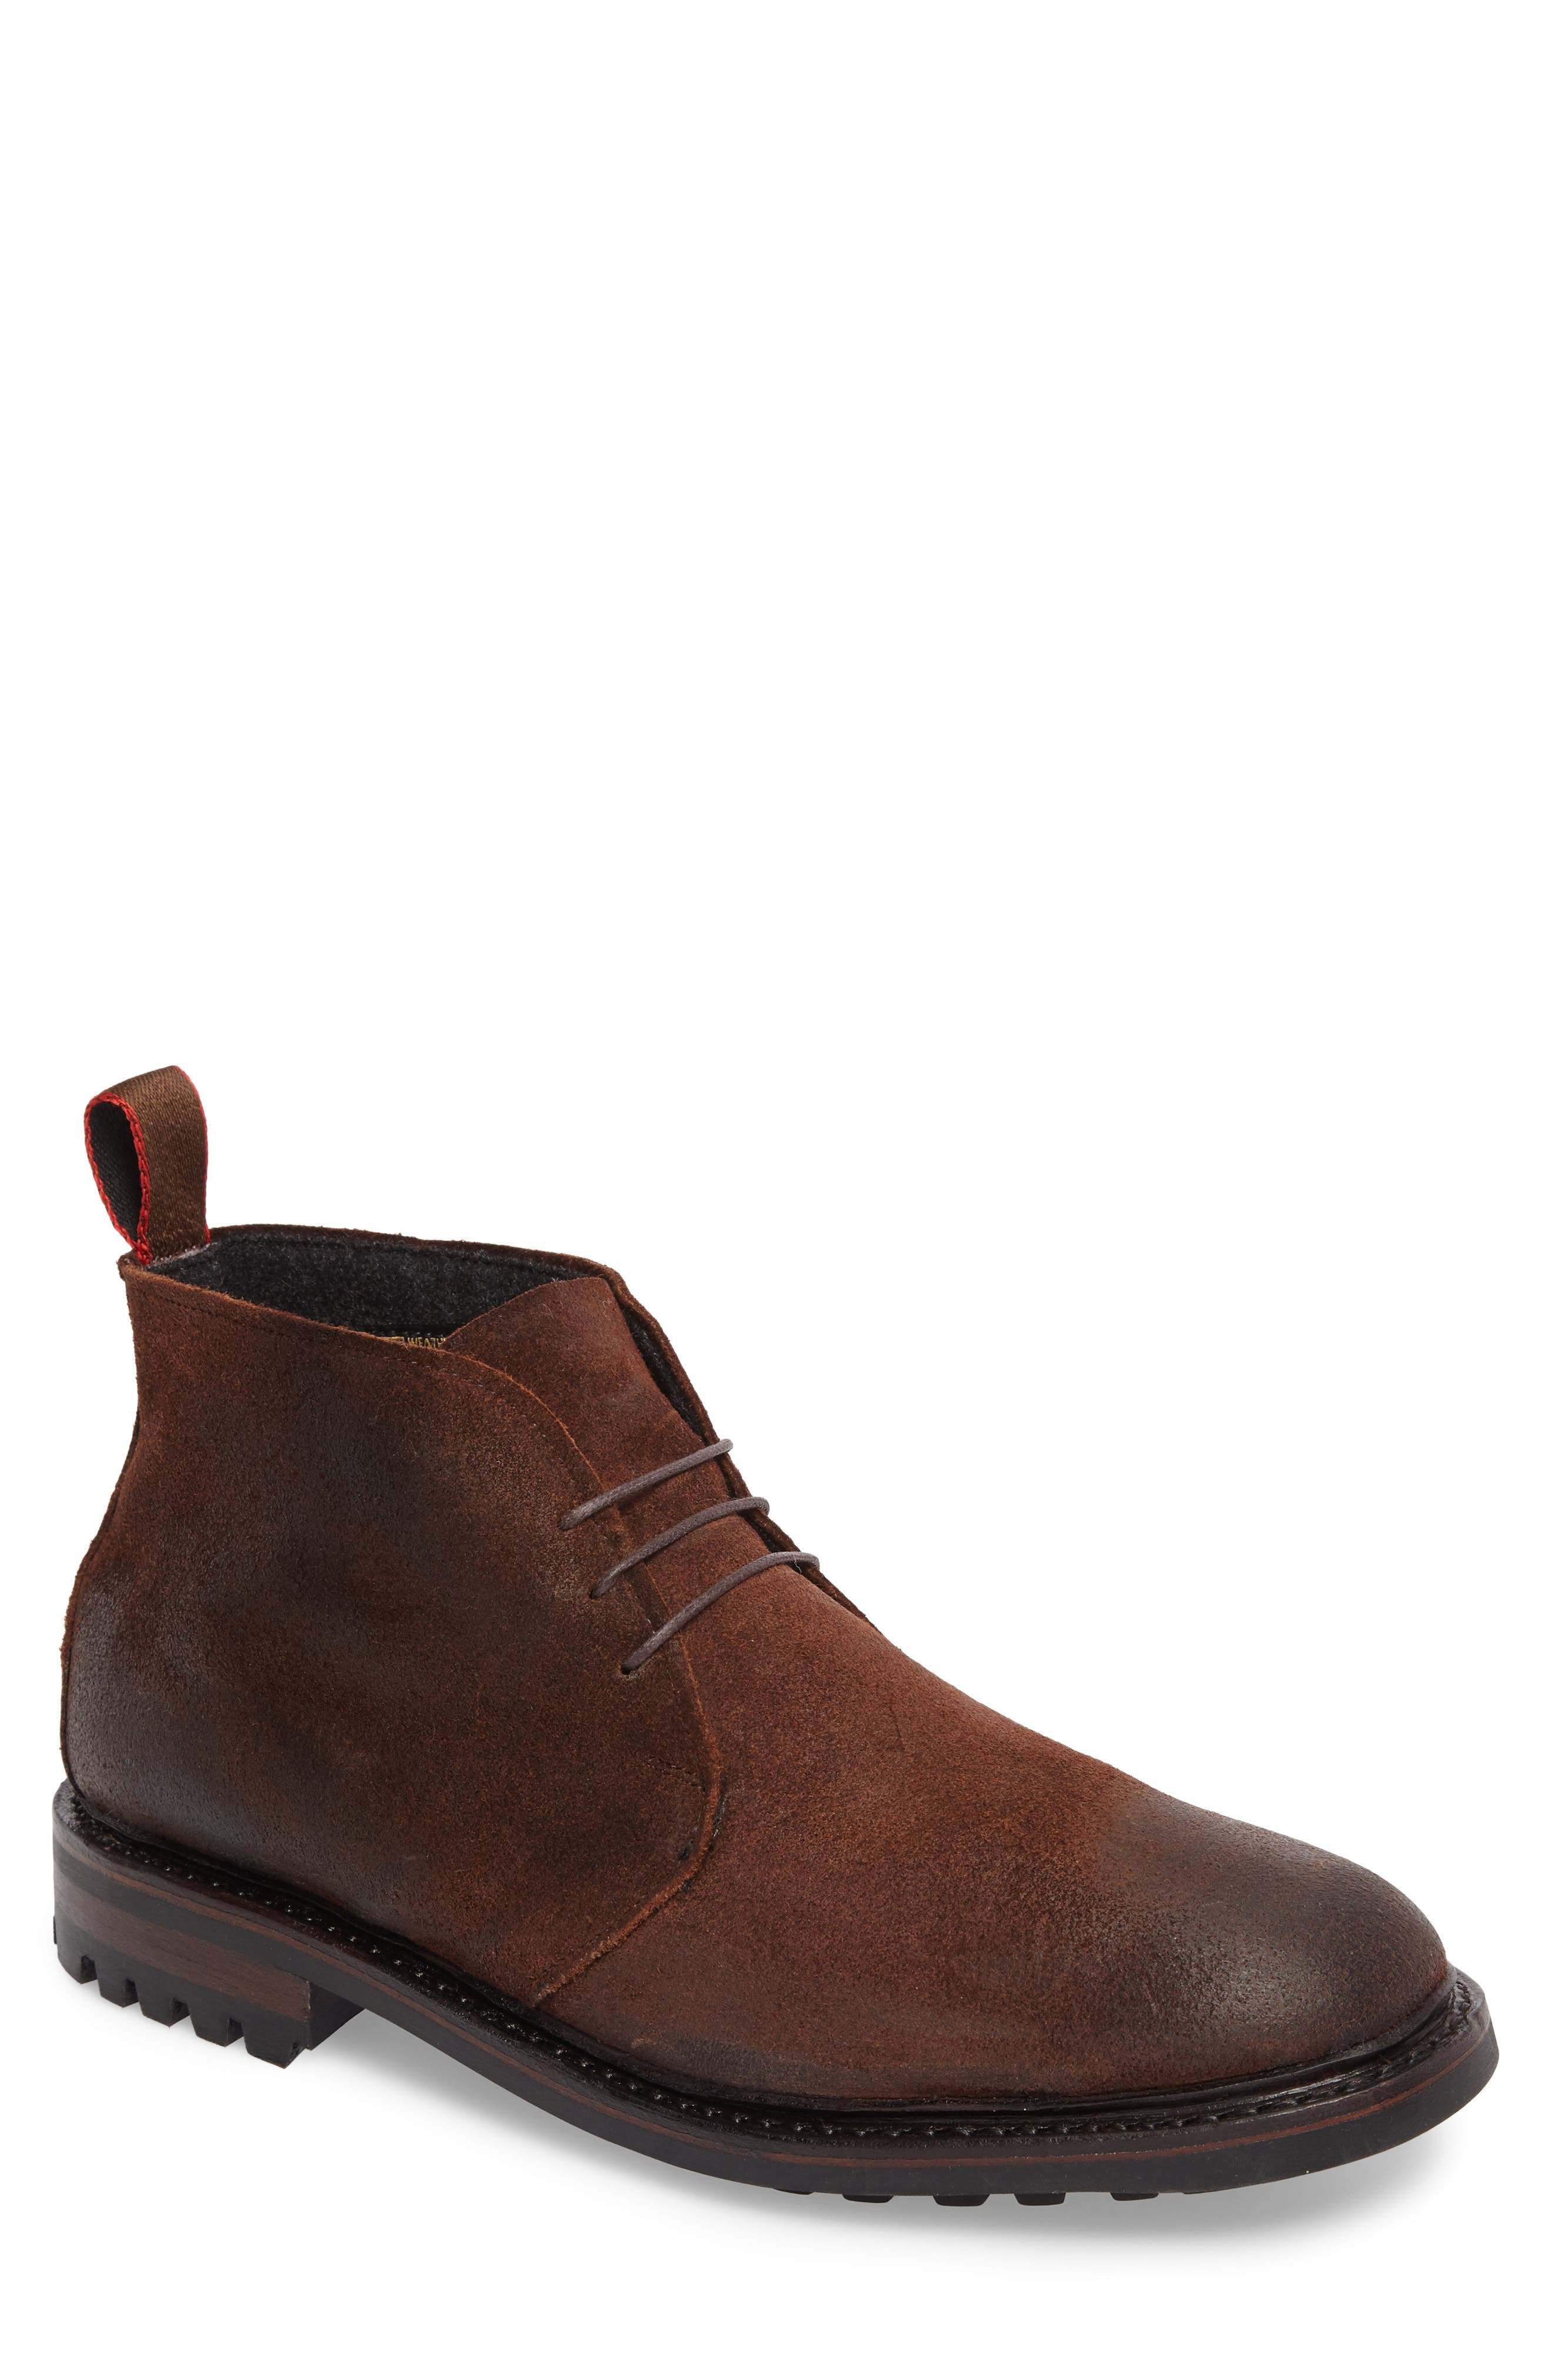 Surrey Water Repellent Chukka Boot,                             Main thumbnail 1, color,                             Brown Leather